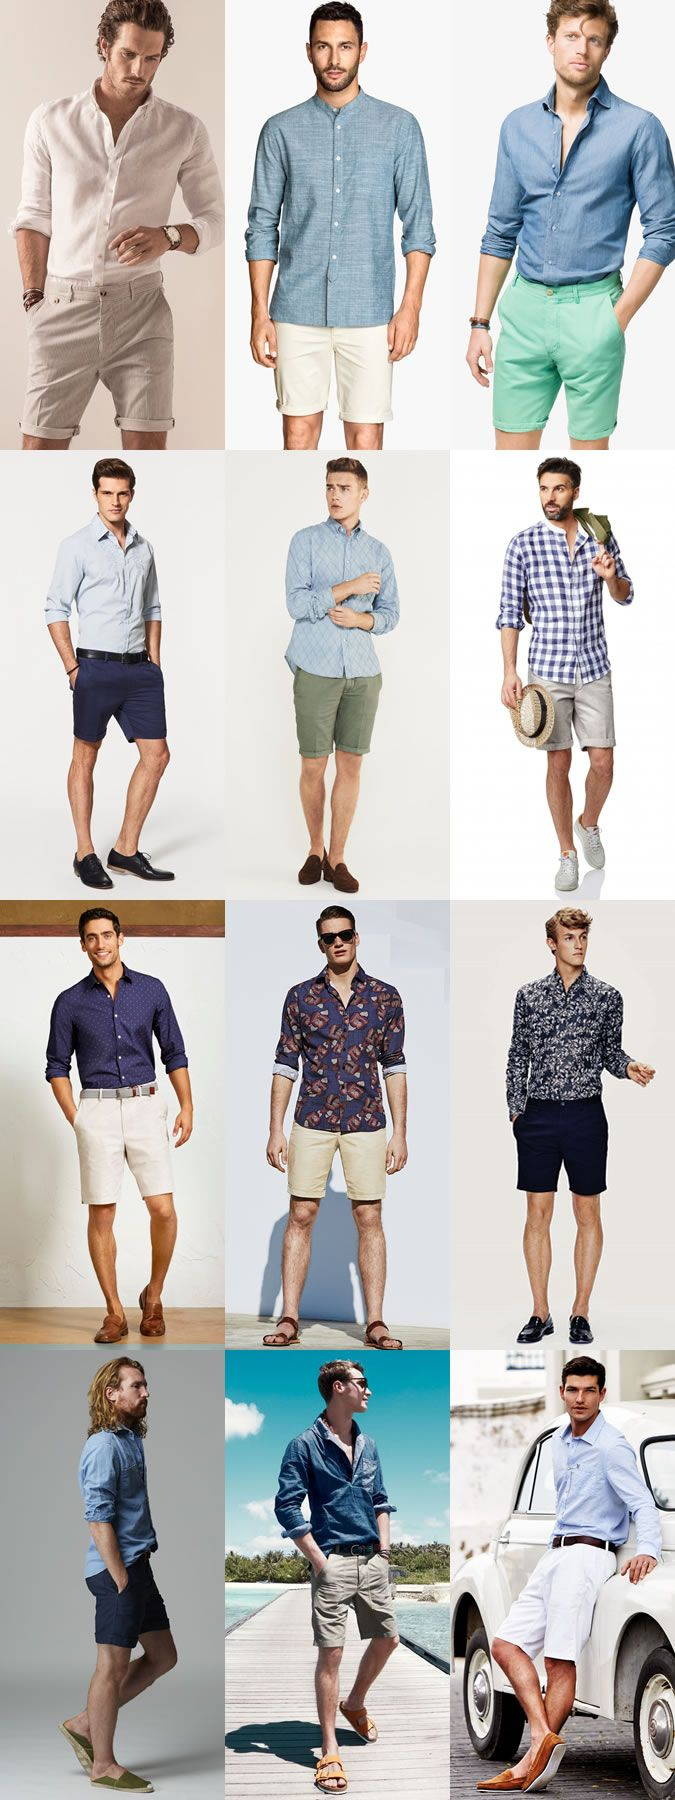 55f2e0ac3e1a Men s Go-To Smart-Casual Summer Outfit Combinations  Long-Sleeved Shirt And  Shorts Combination Inspiration Lookbo…